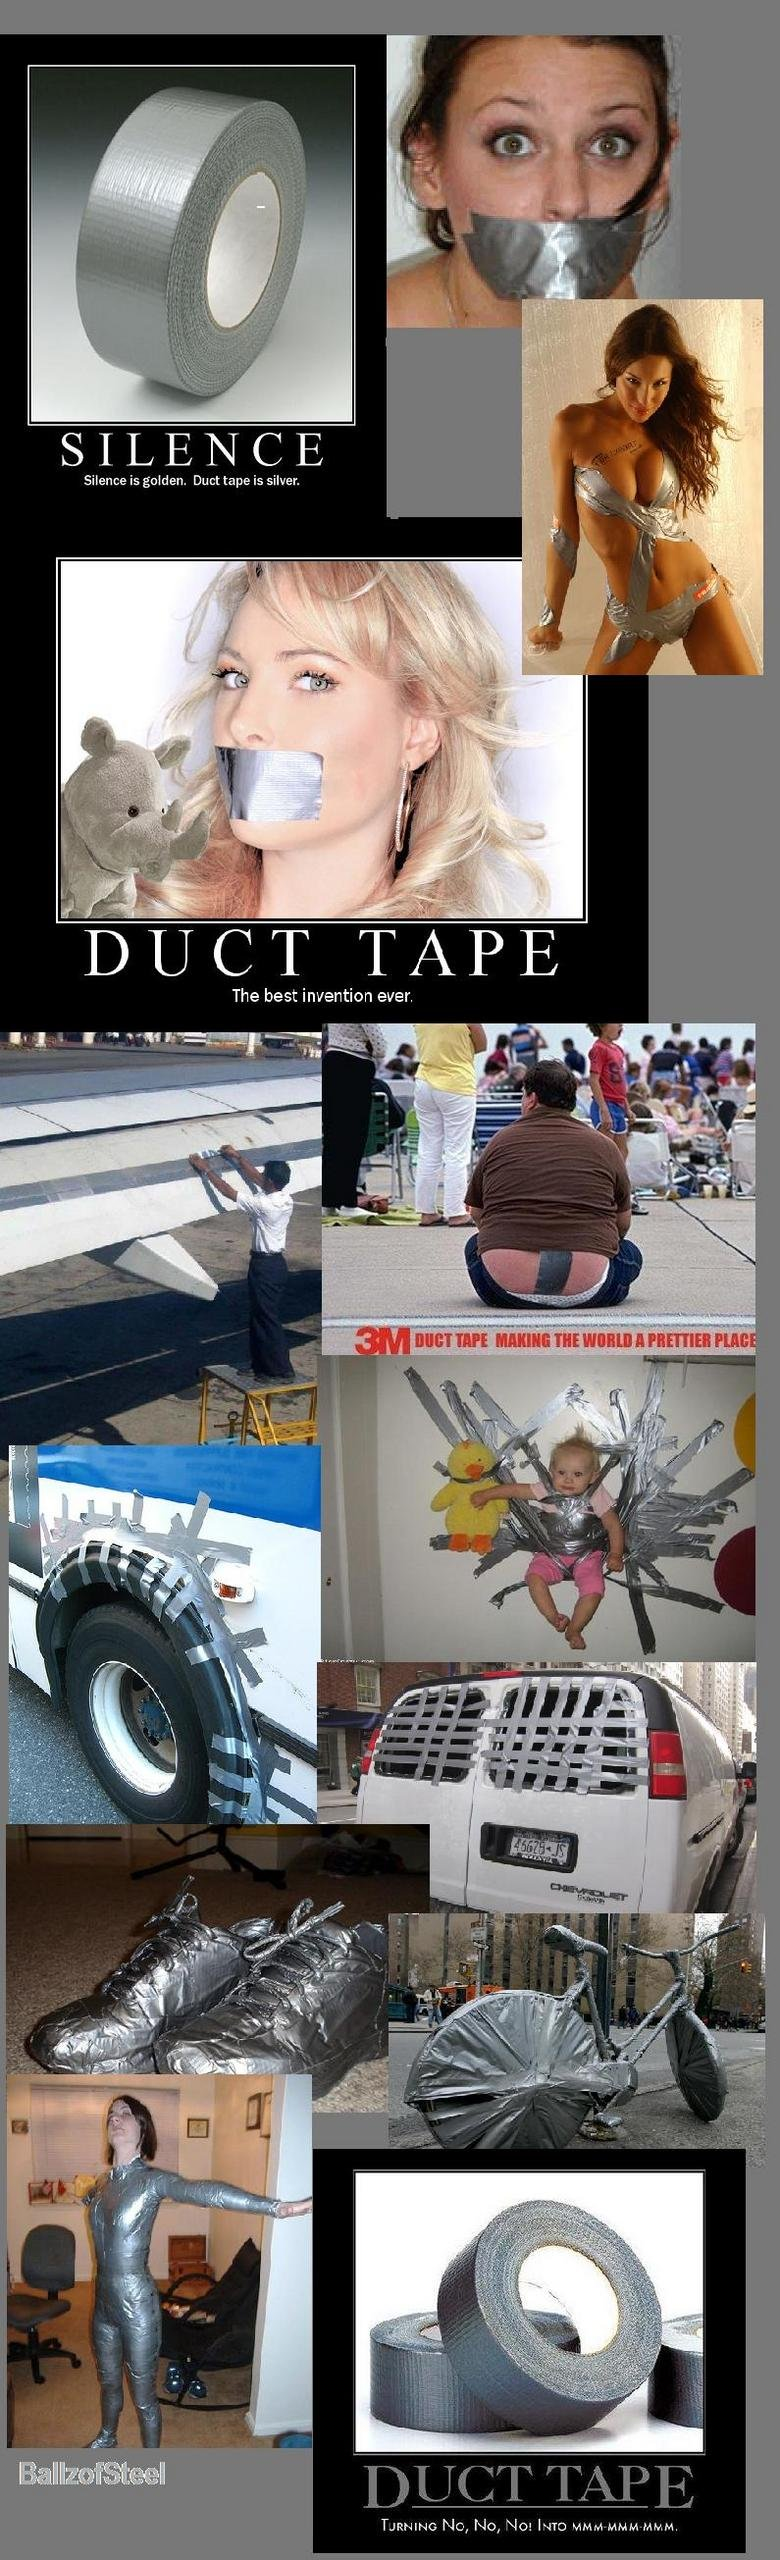 Duct Tape Compilation. Duct tape it can fix everything.. Hence is golden Duct tape is silver. DUCT TAPE The best invention ever. thats hilarious